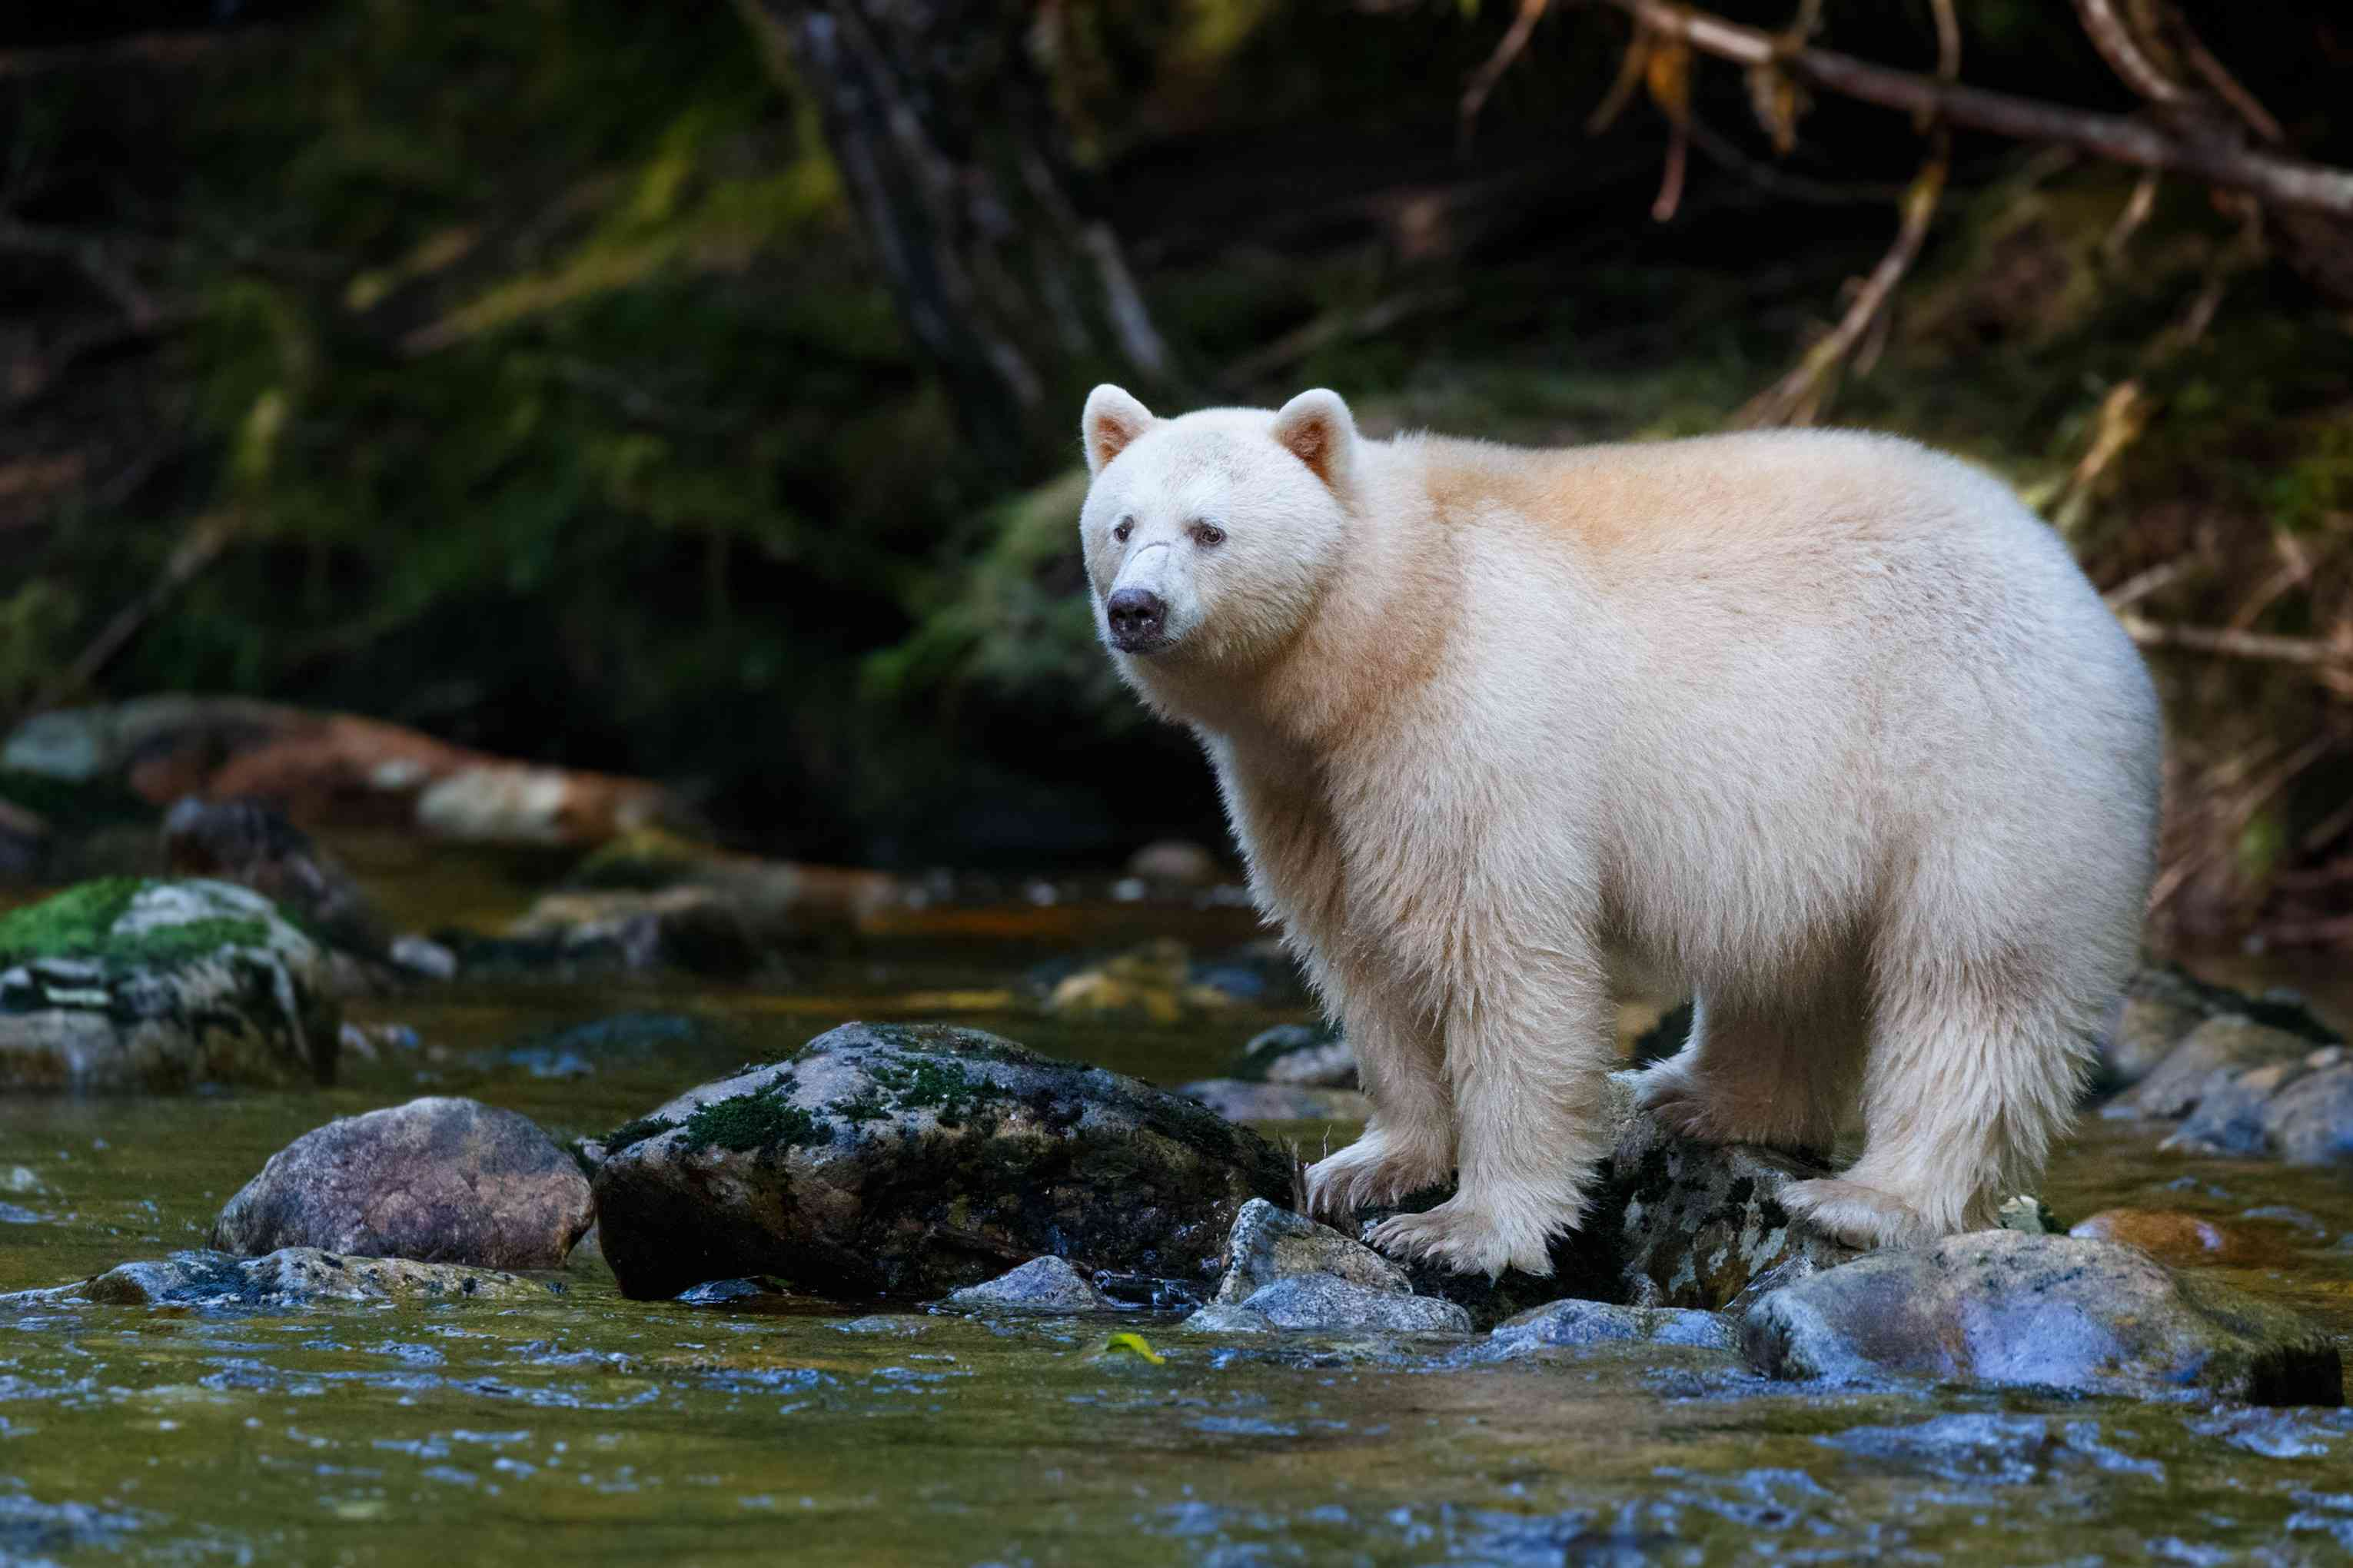 white spirit bear stands on rocks in river with rushing water